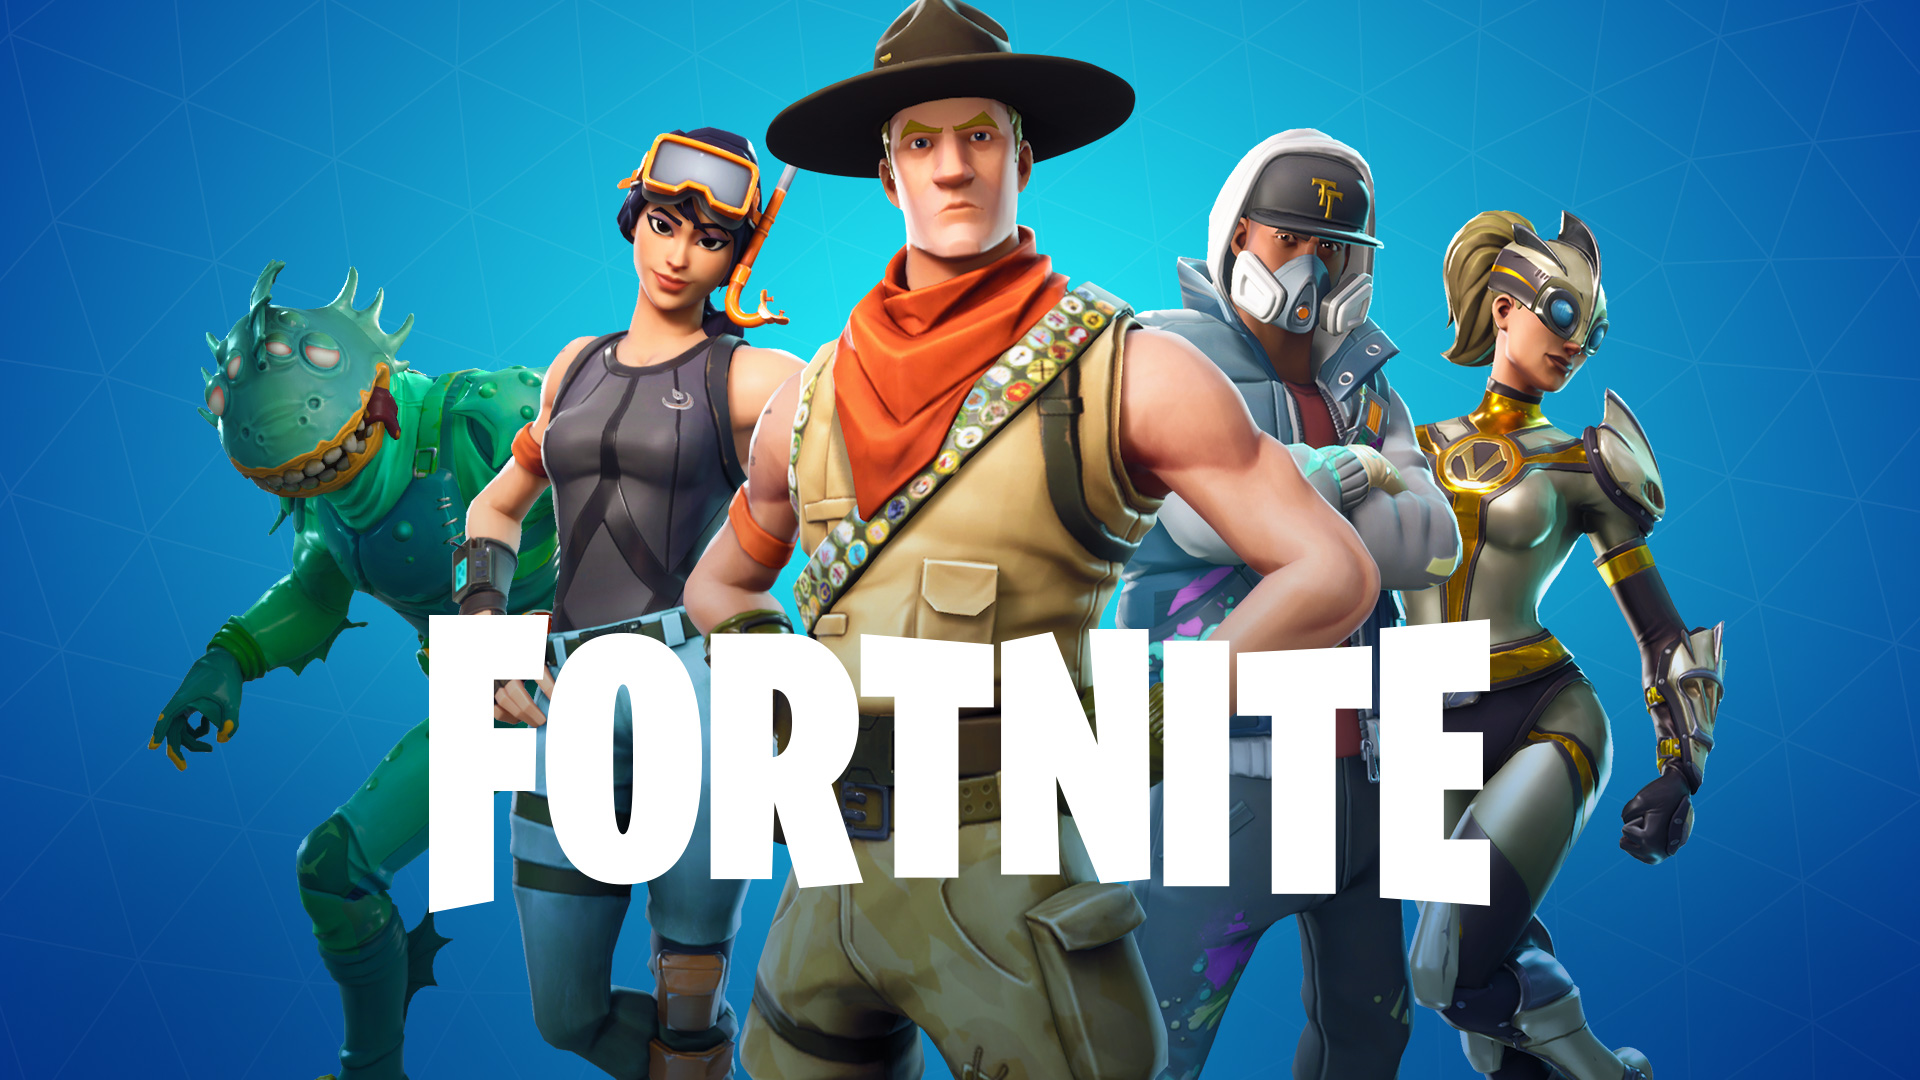 You can now play Fortnite on Android without an invite